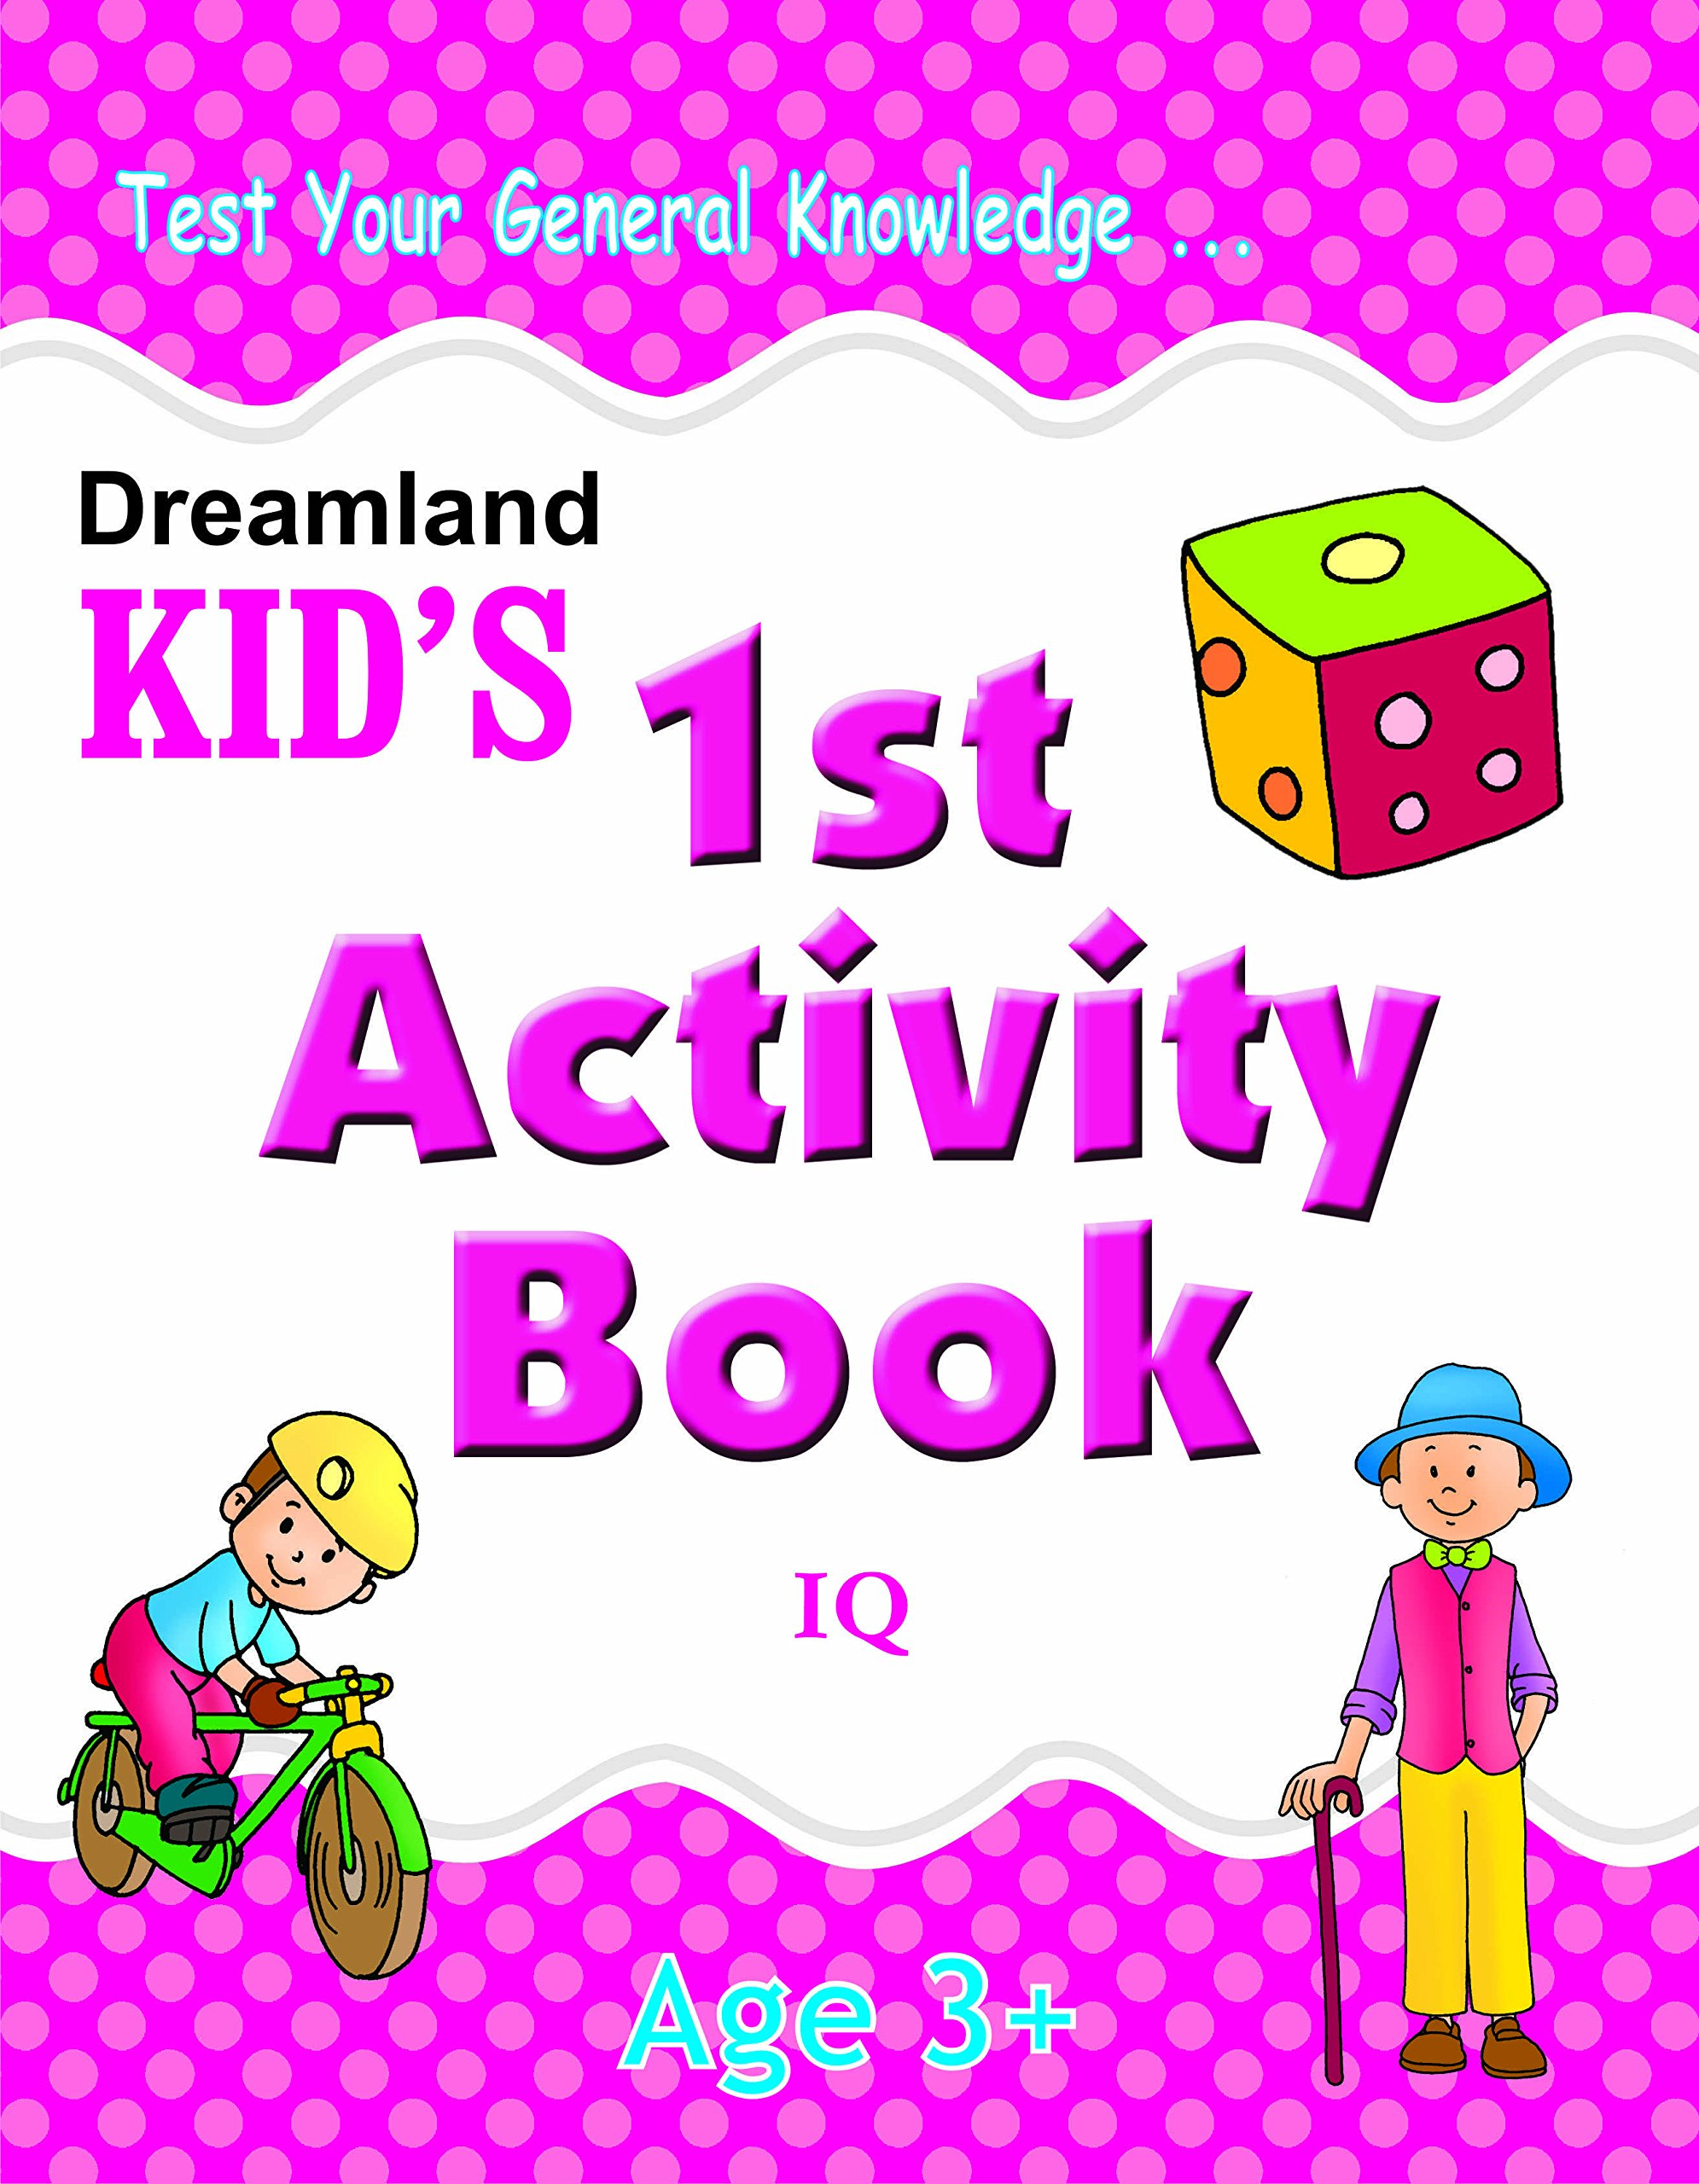 Buy 1st Activity Book - IQ (Kid's Activity Books) Book Online at Low ...